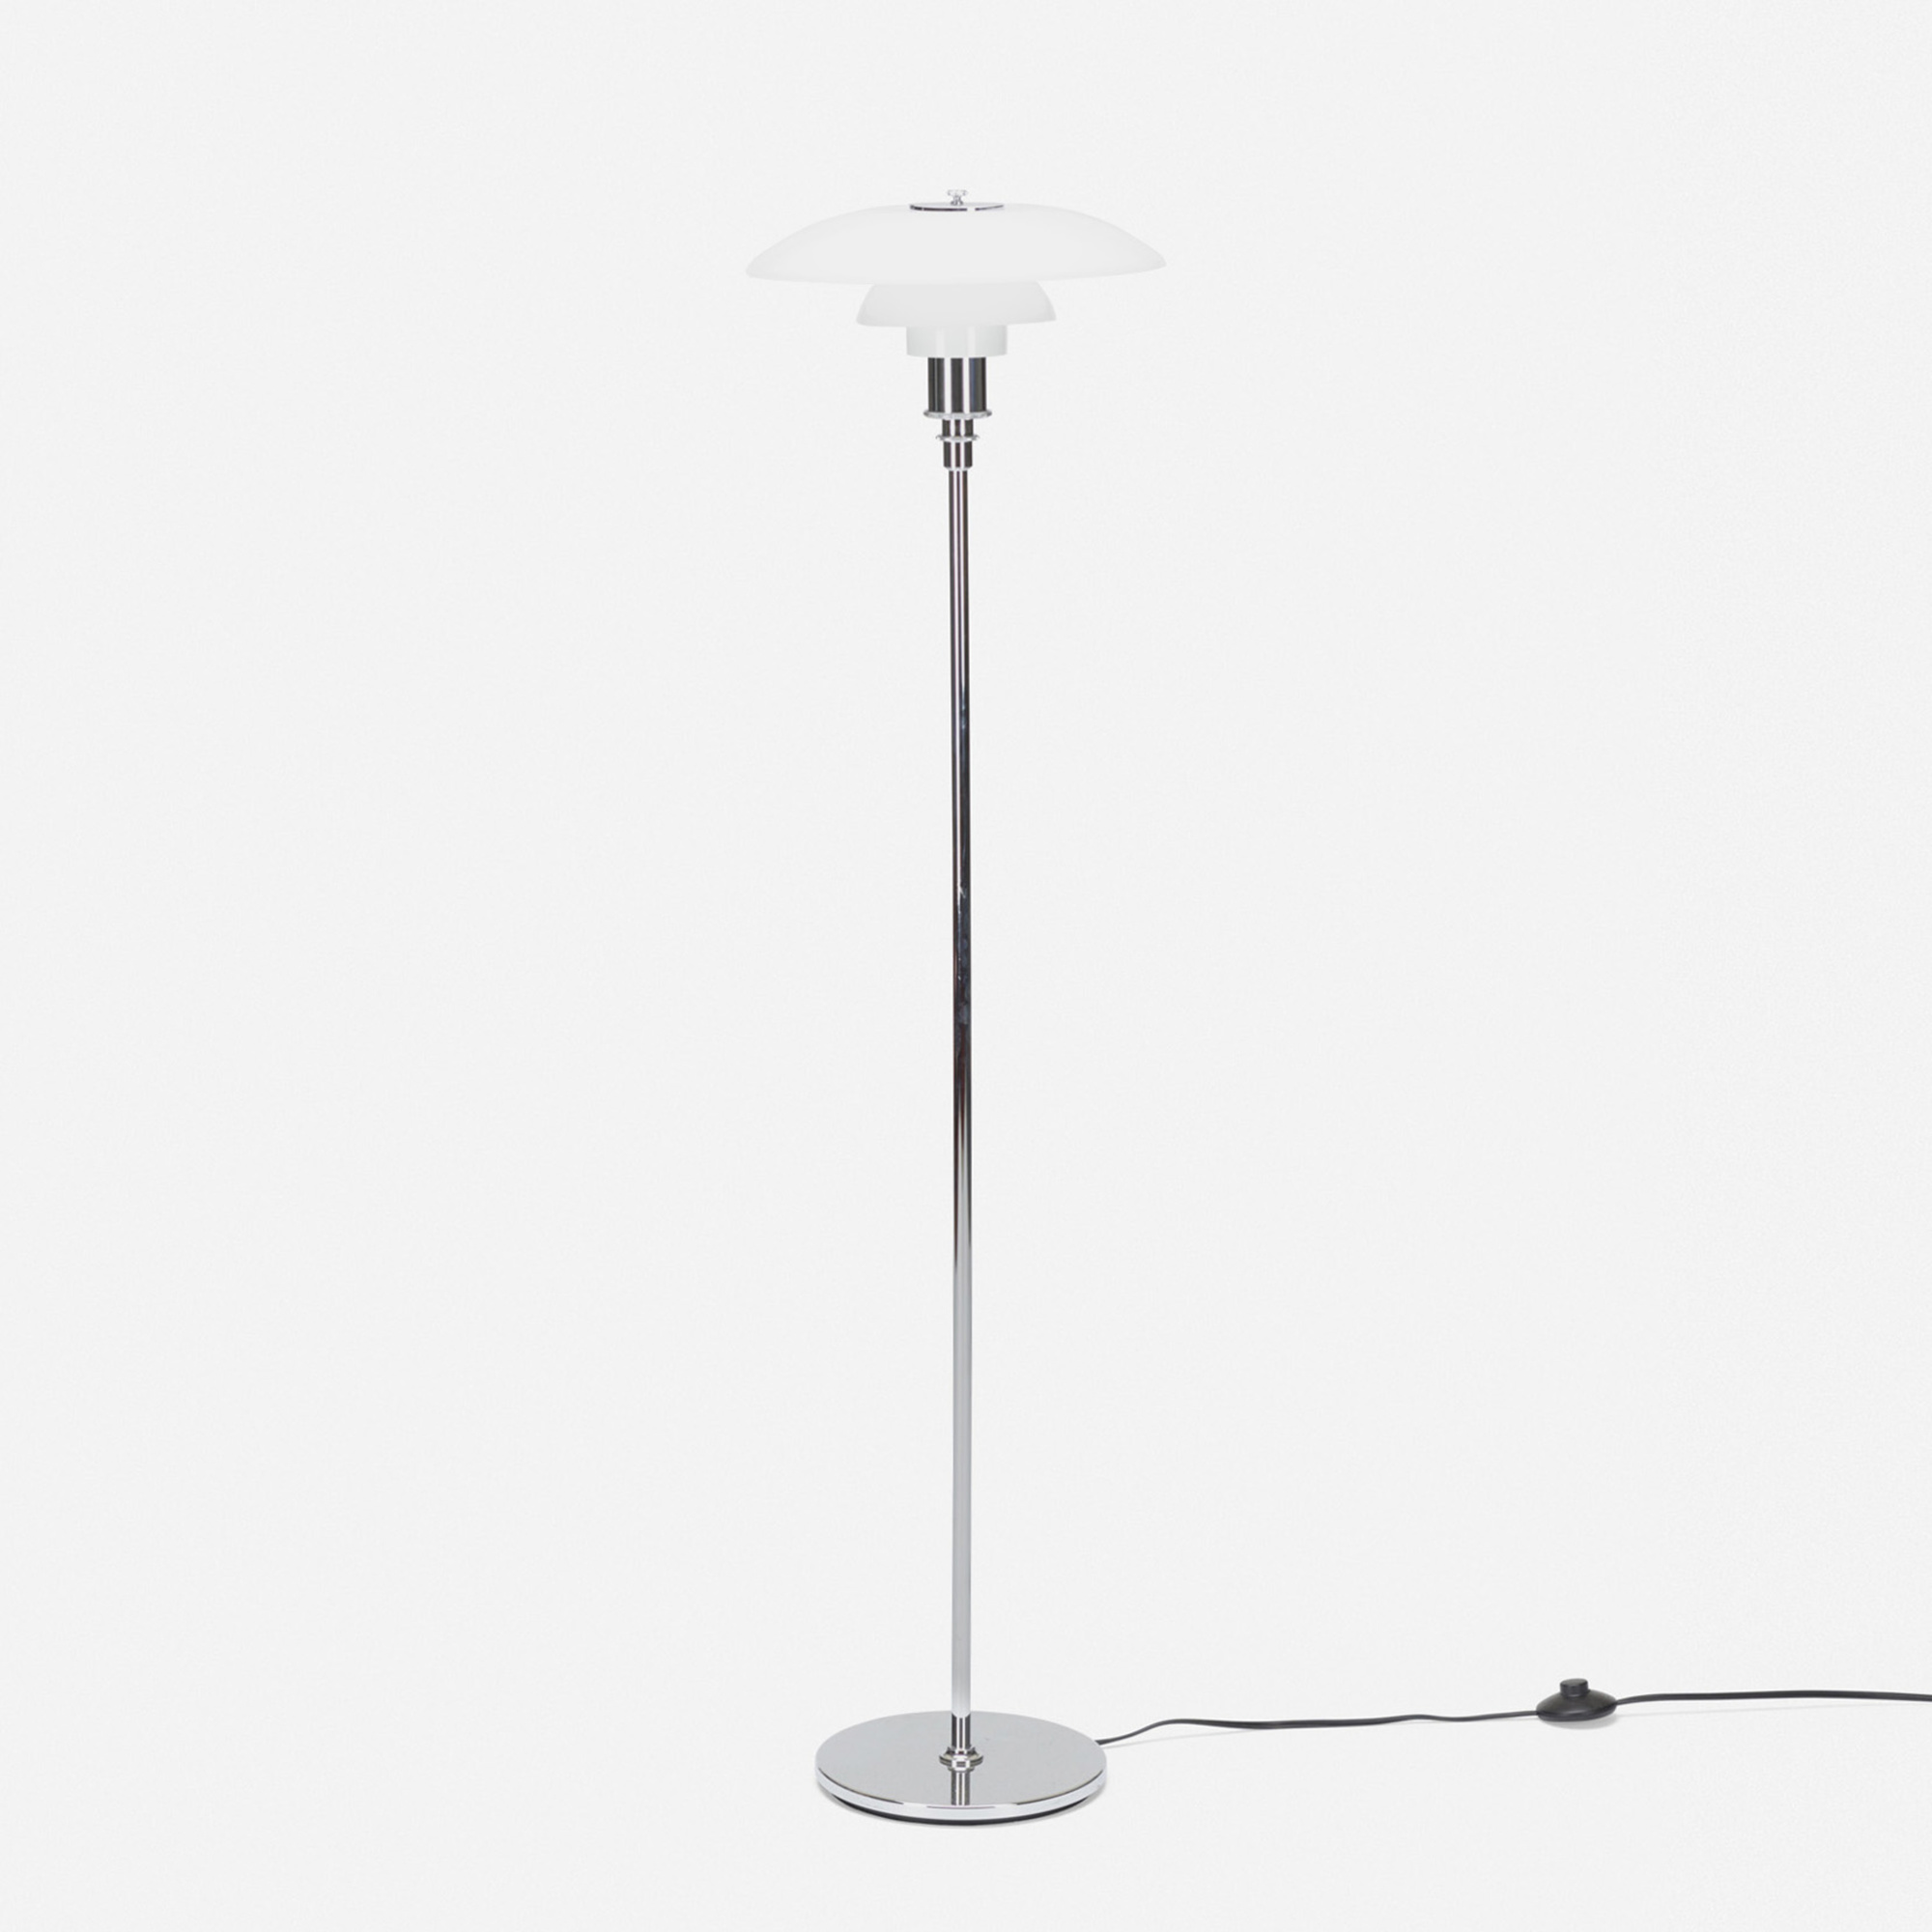 348: Poul Henningsen / PH 3.5/2.5 floor lamp (1 of 1)